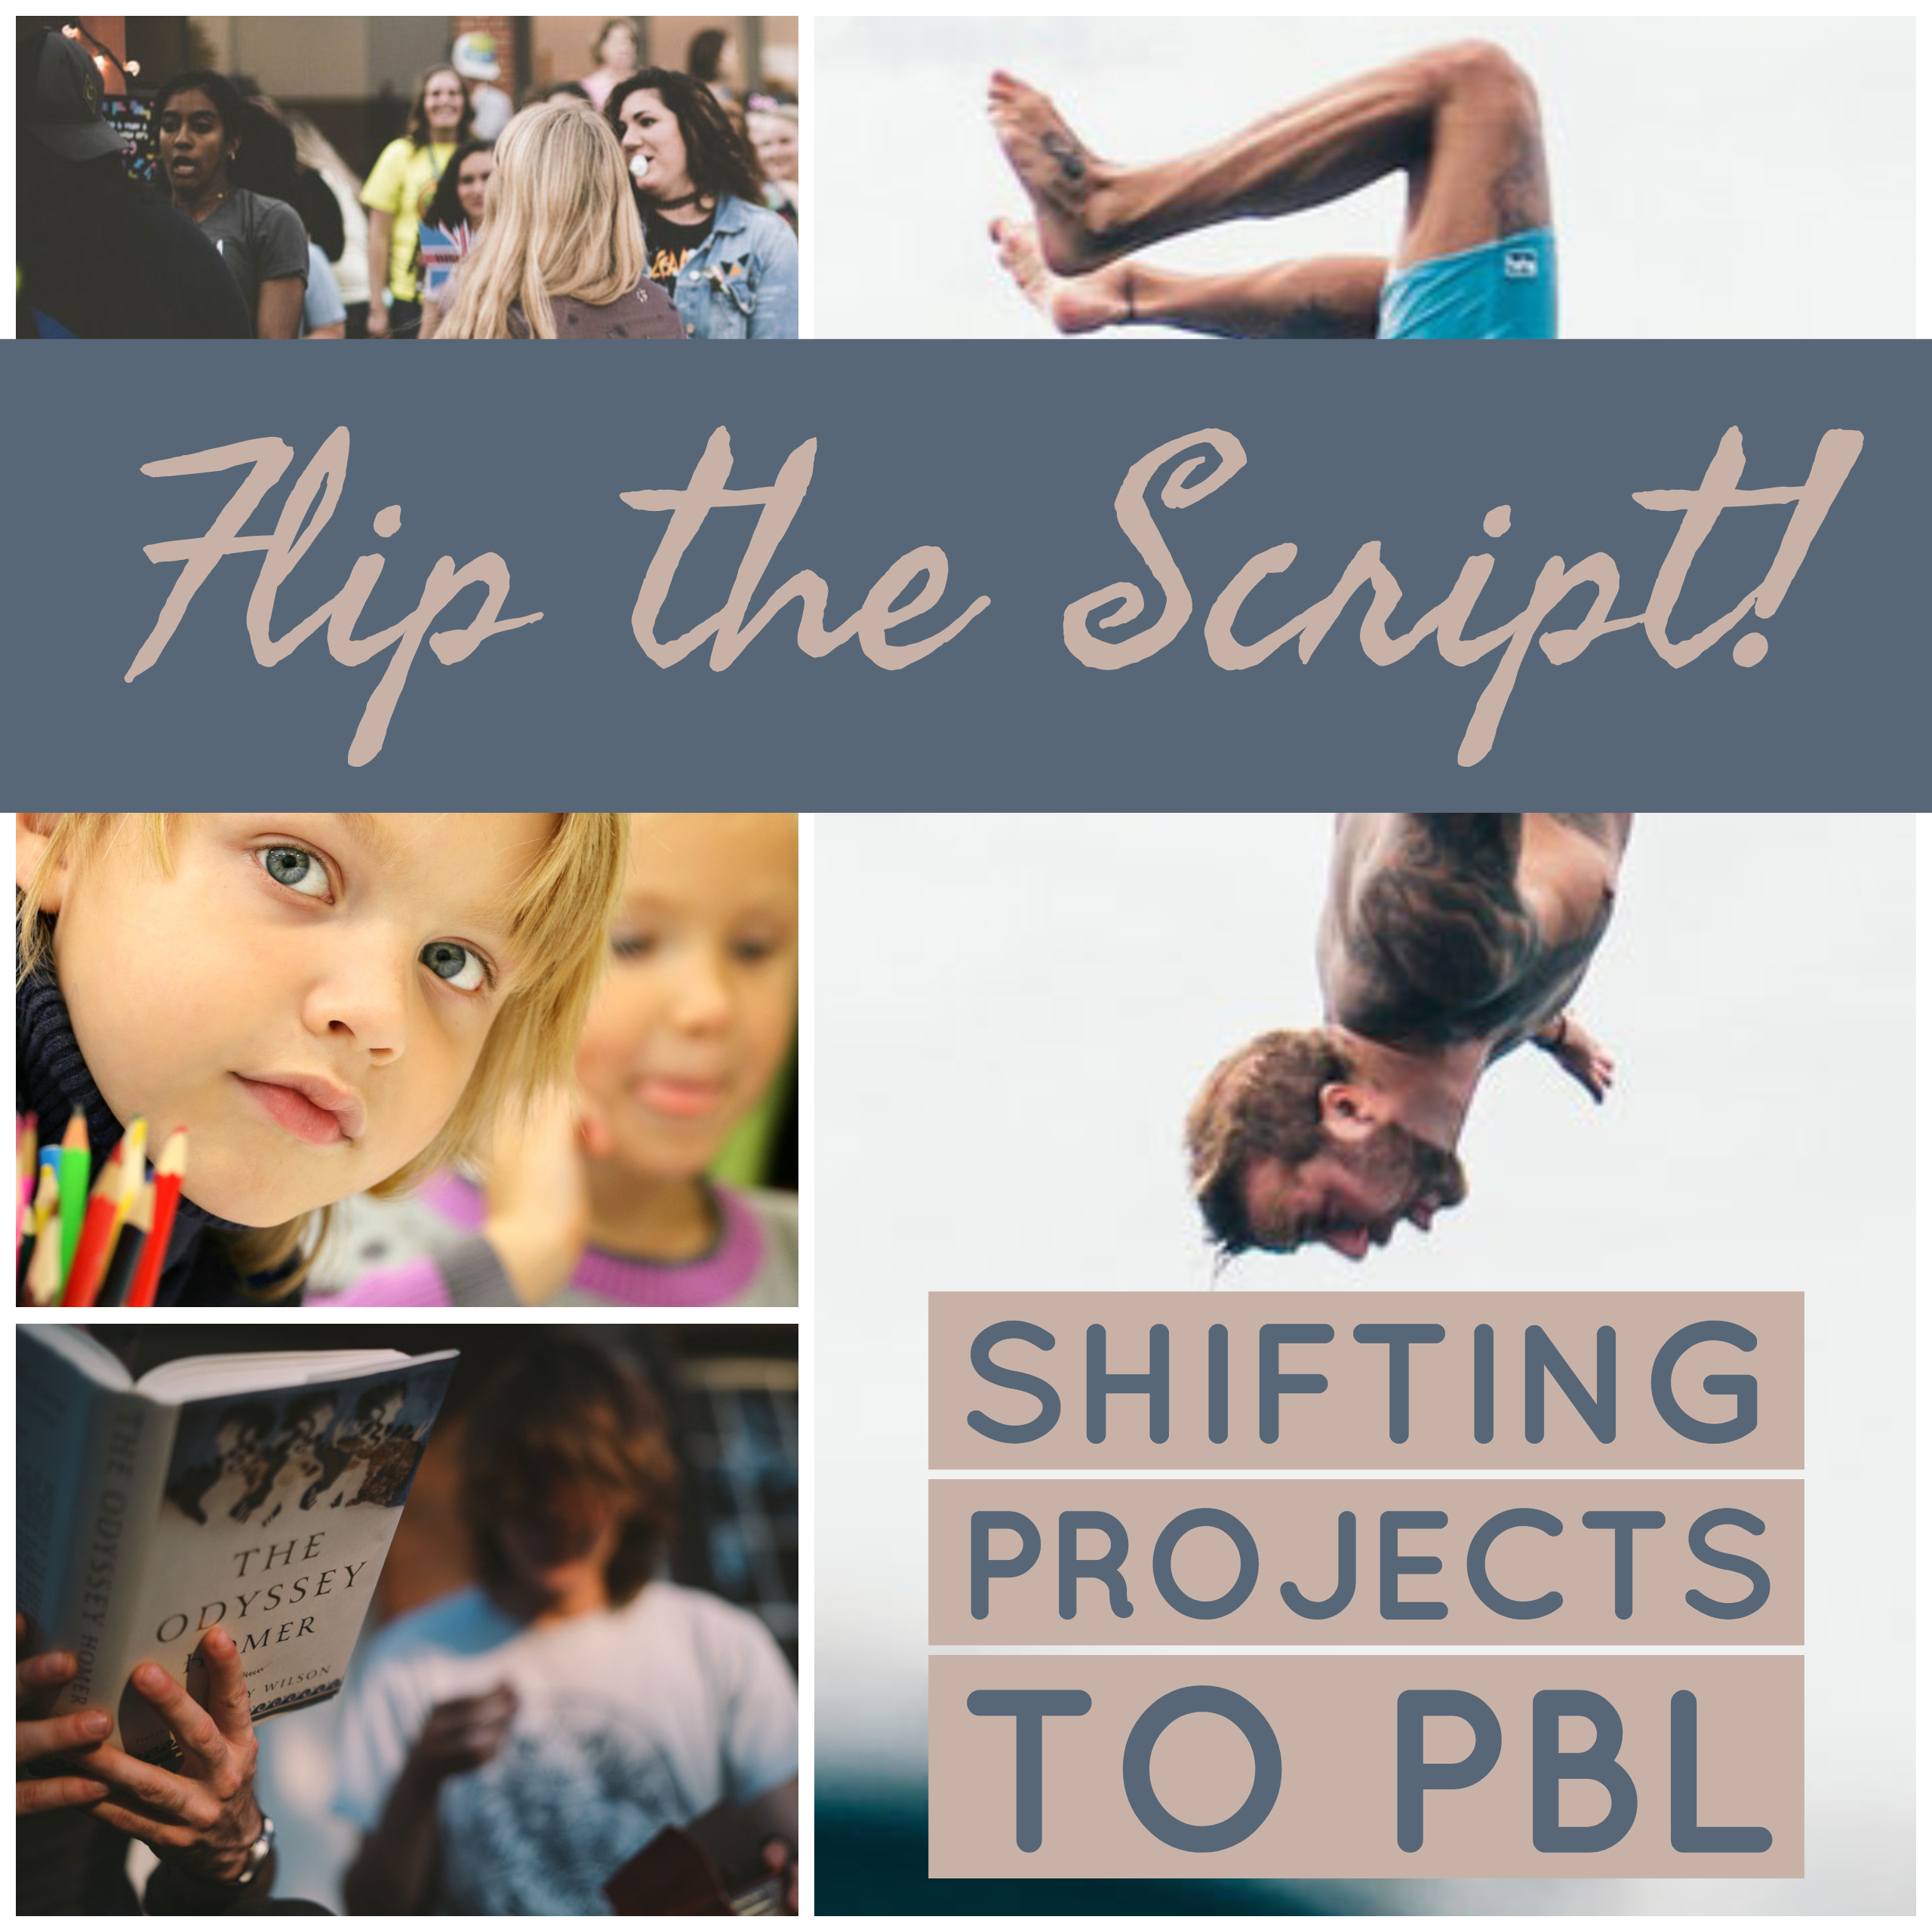 Shifting Our Projects to PBL